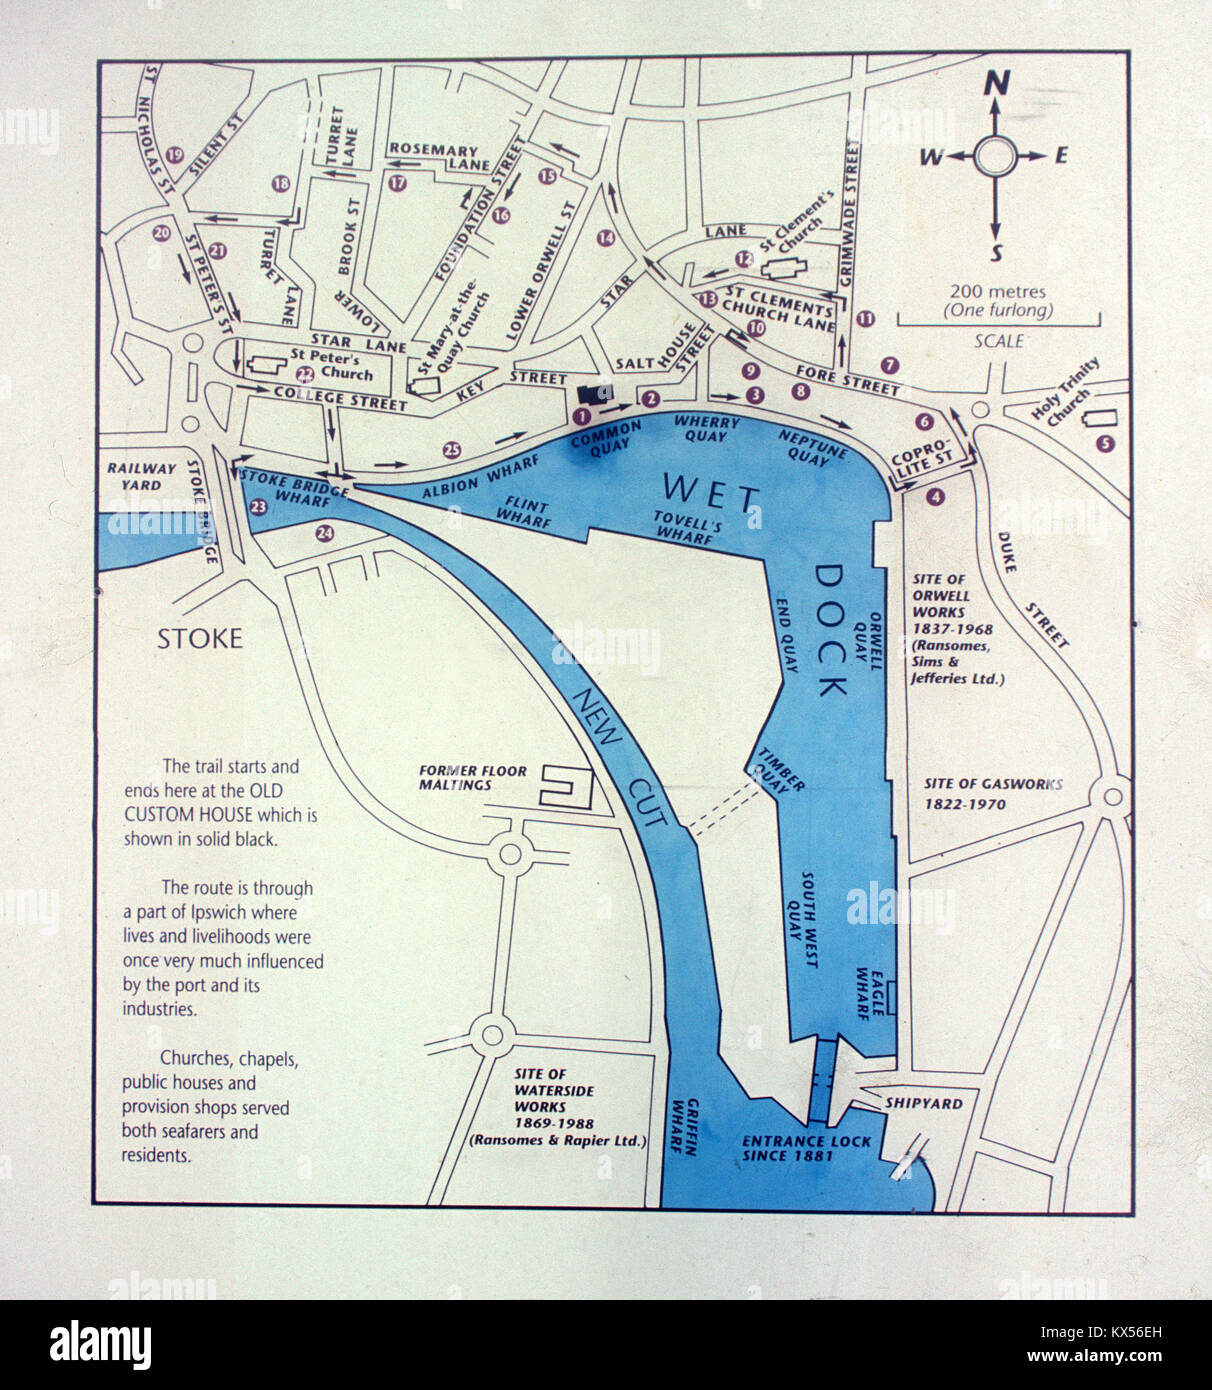 Ipswich Uk Map.Map Of Wet Dock Showing Historic Sites Main Industries And Stock